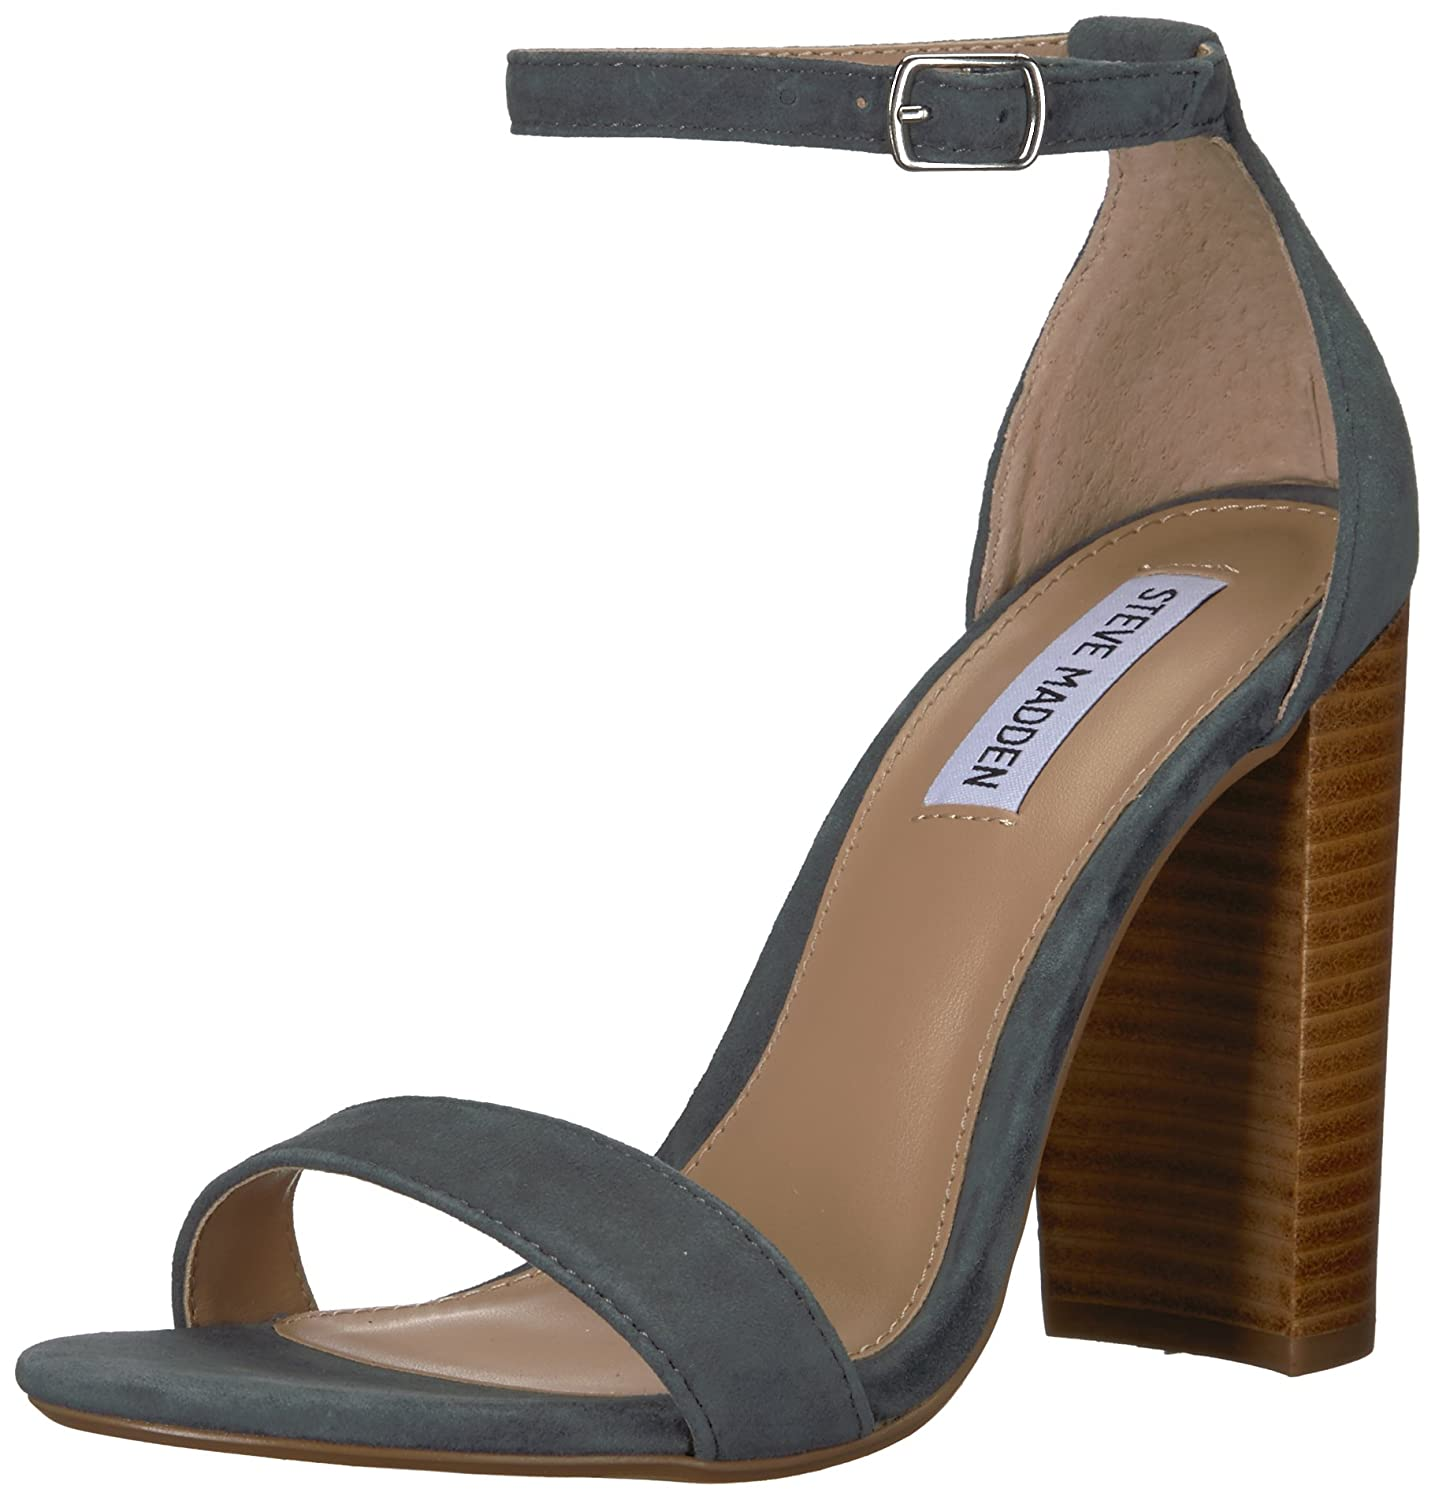 Steve Madden Women's Carrson Dress Sandal B07C8RK57T 9 B(M) US|Blue/Multi